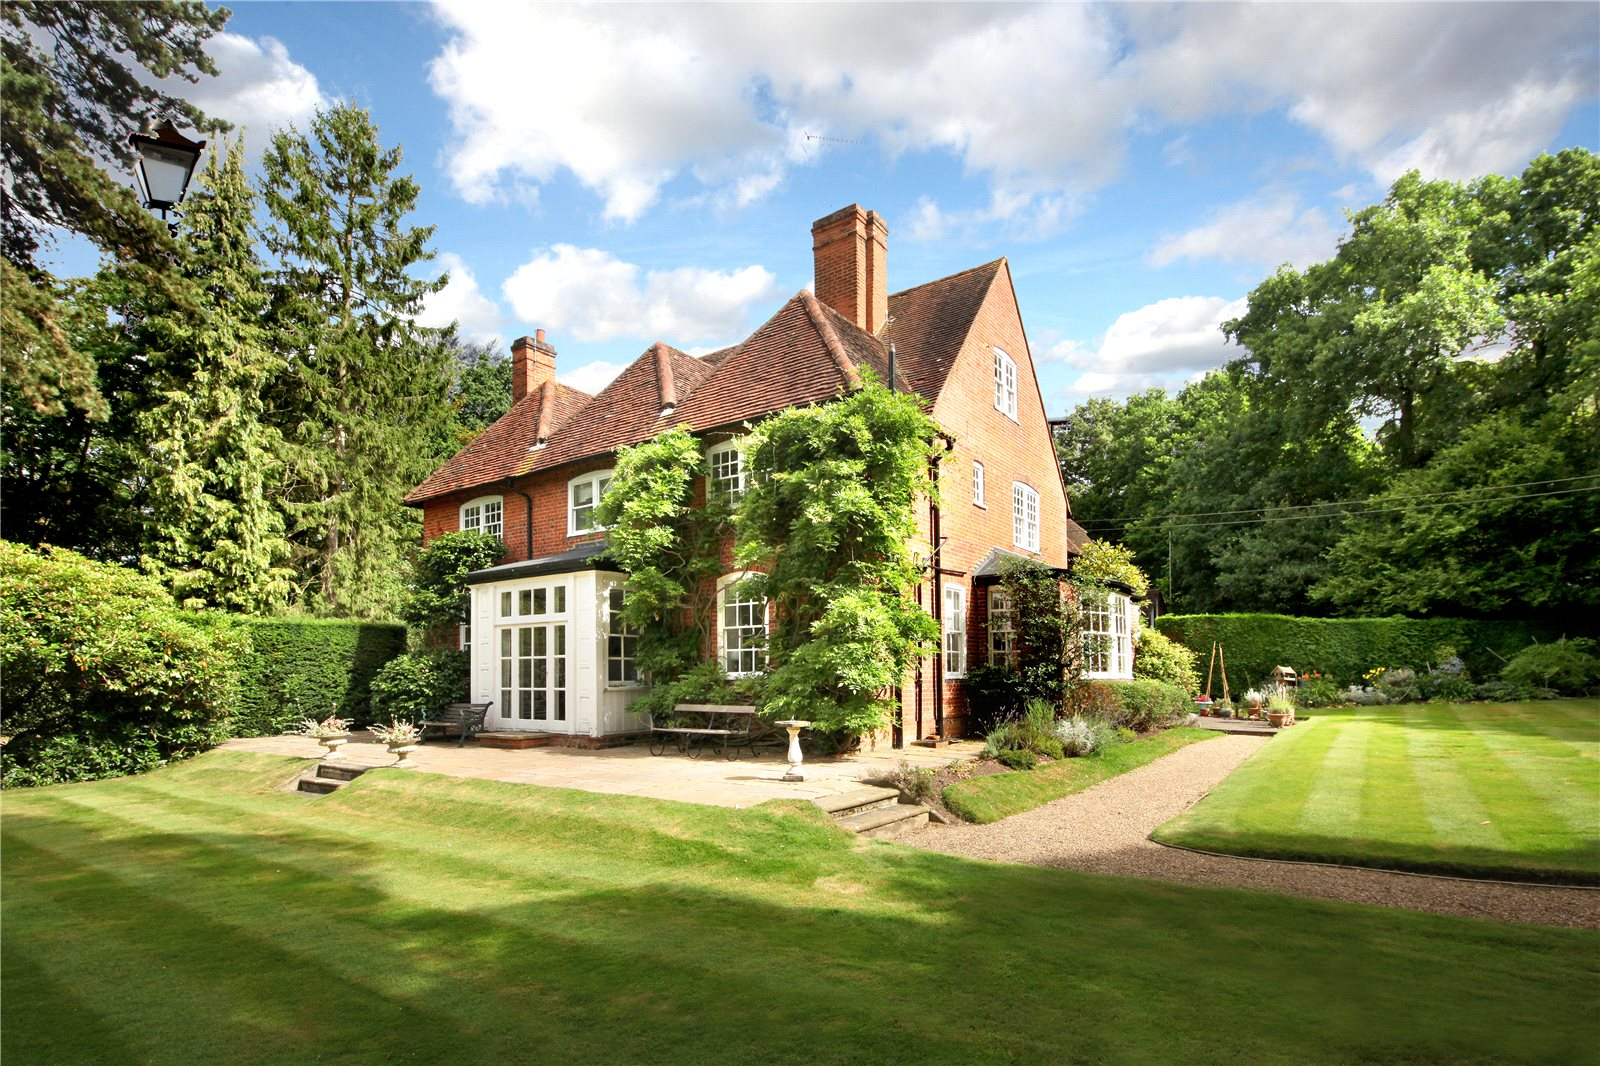 Single Family Home for Sale at Valley End, Chobham, Surrey, GU24 Chobham, England